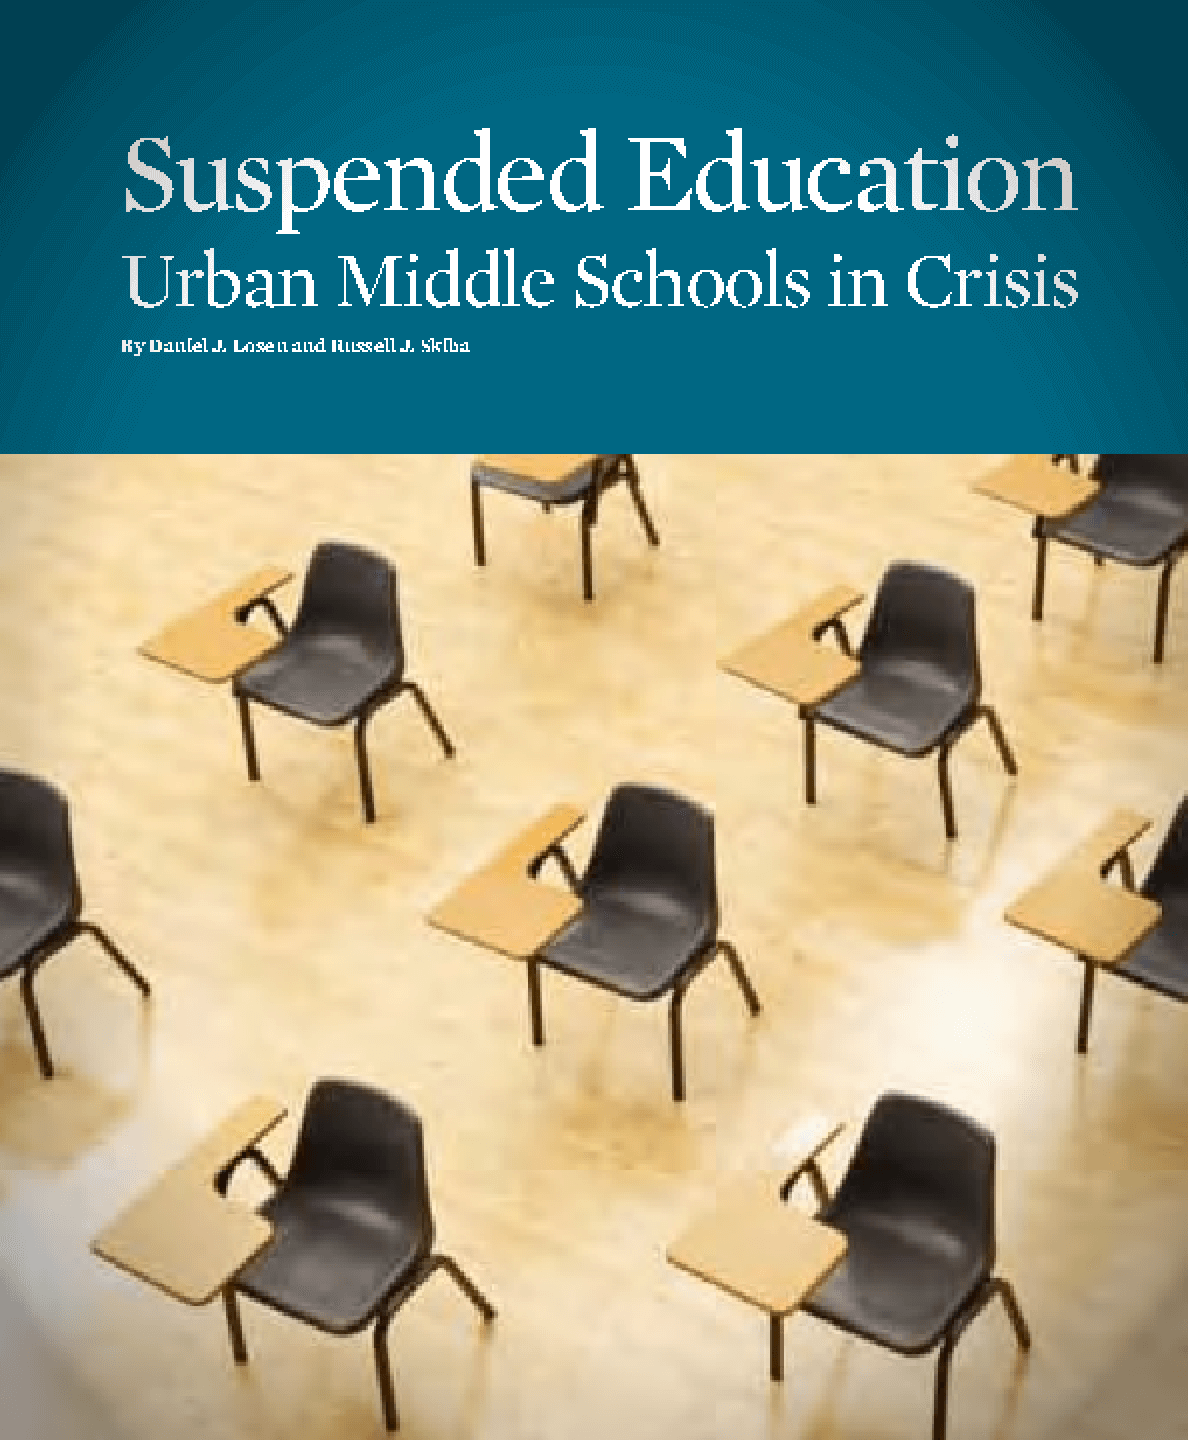 Suspended Education: Urban Middle Schools in Crisis